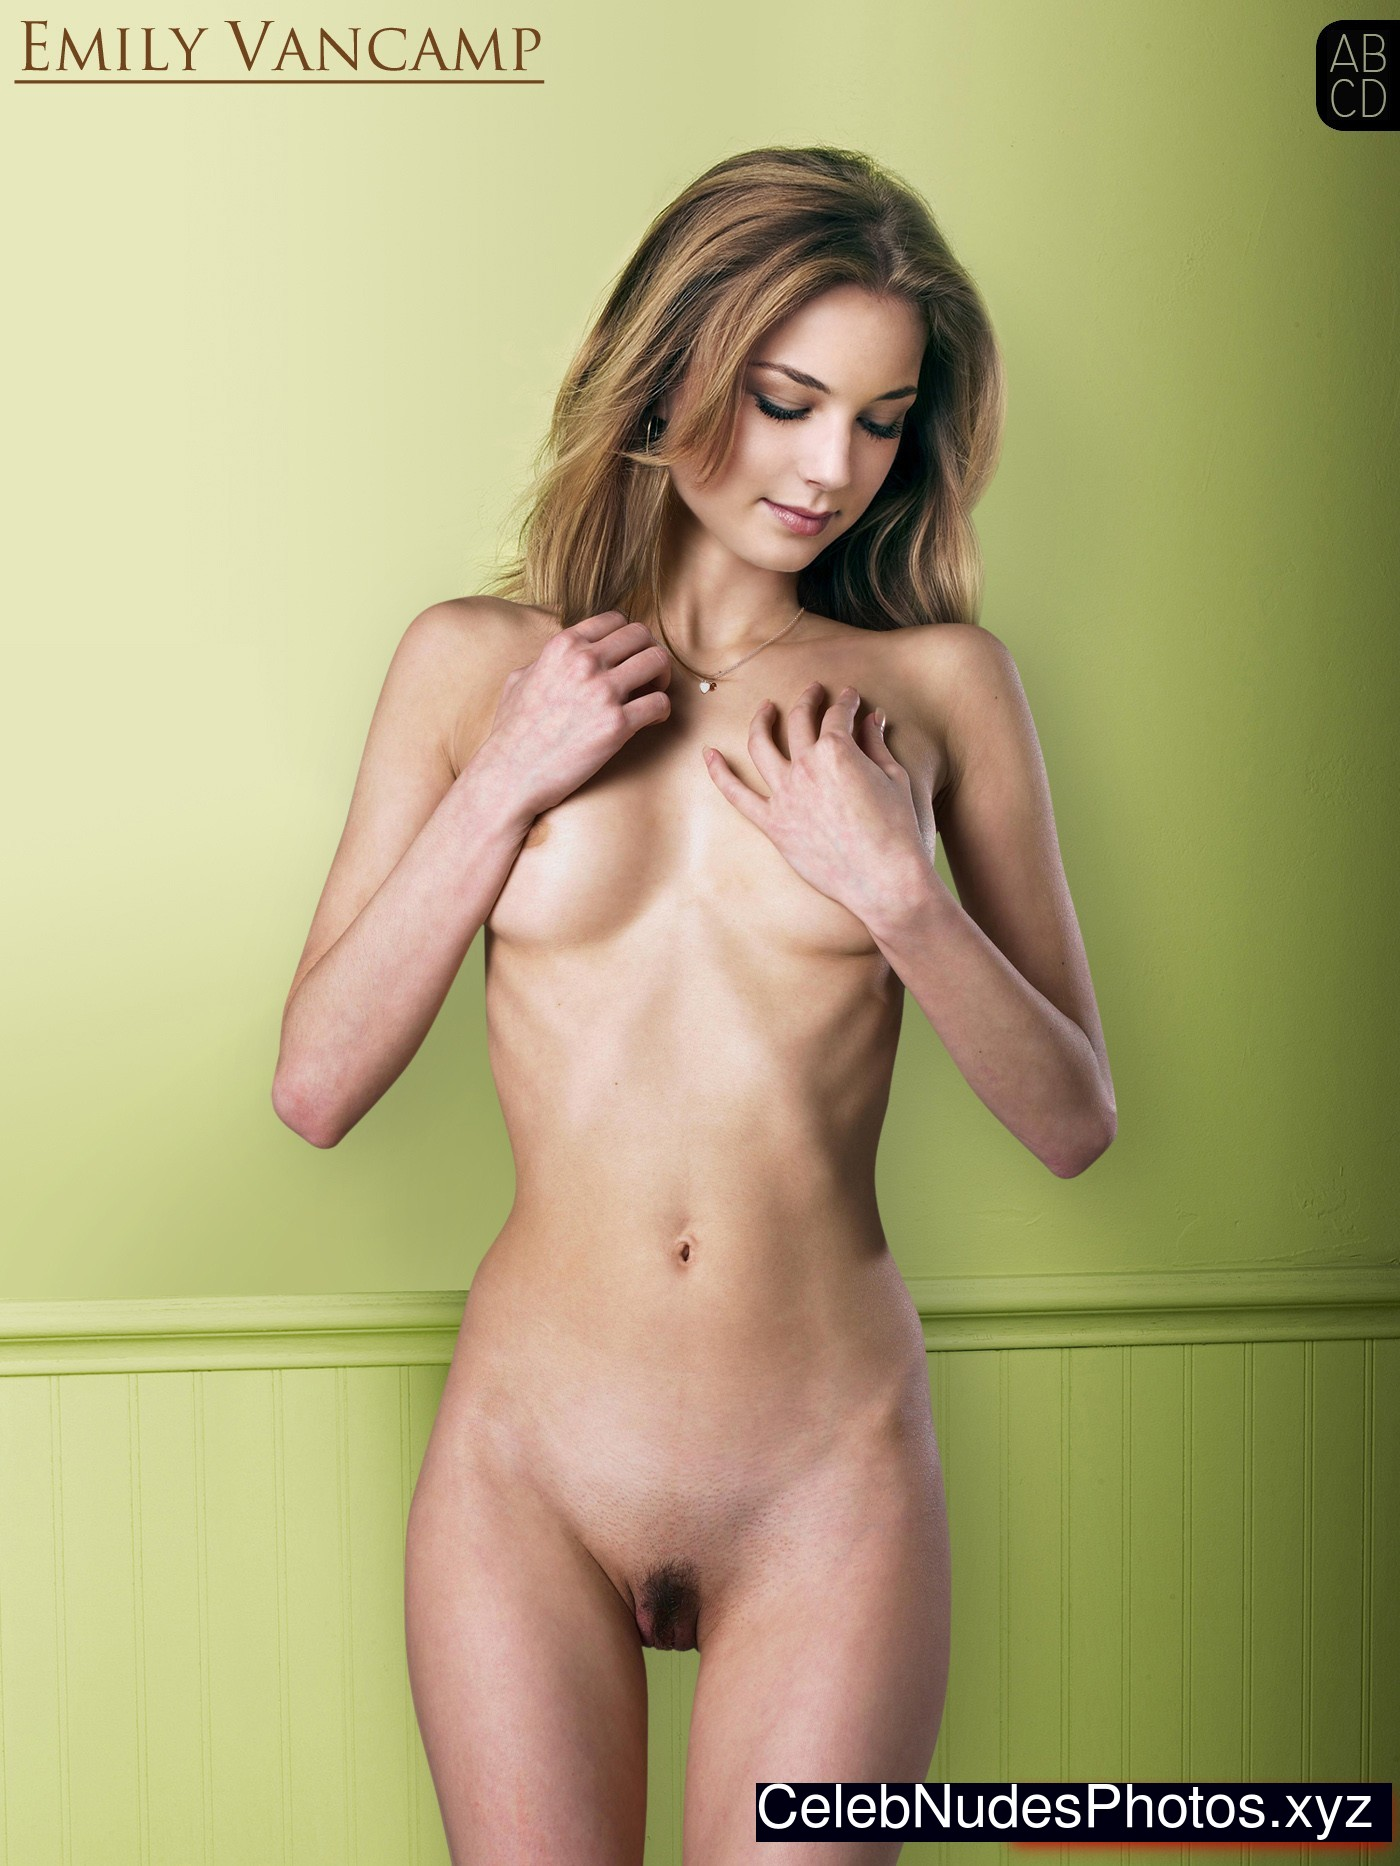 More than nude emily vancamp gallery absolutely not